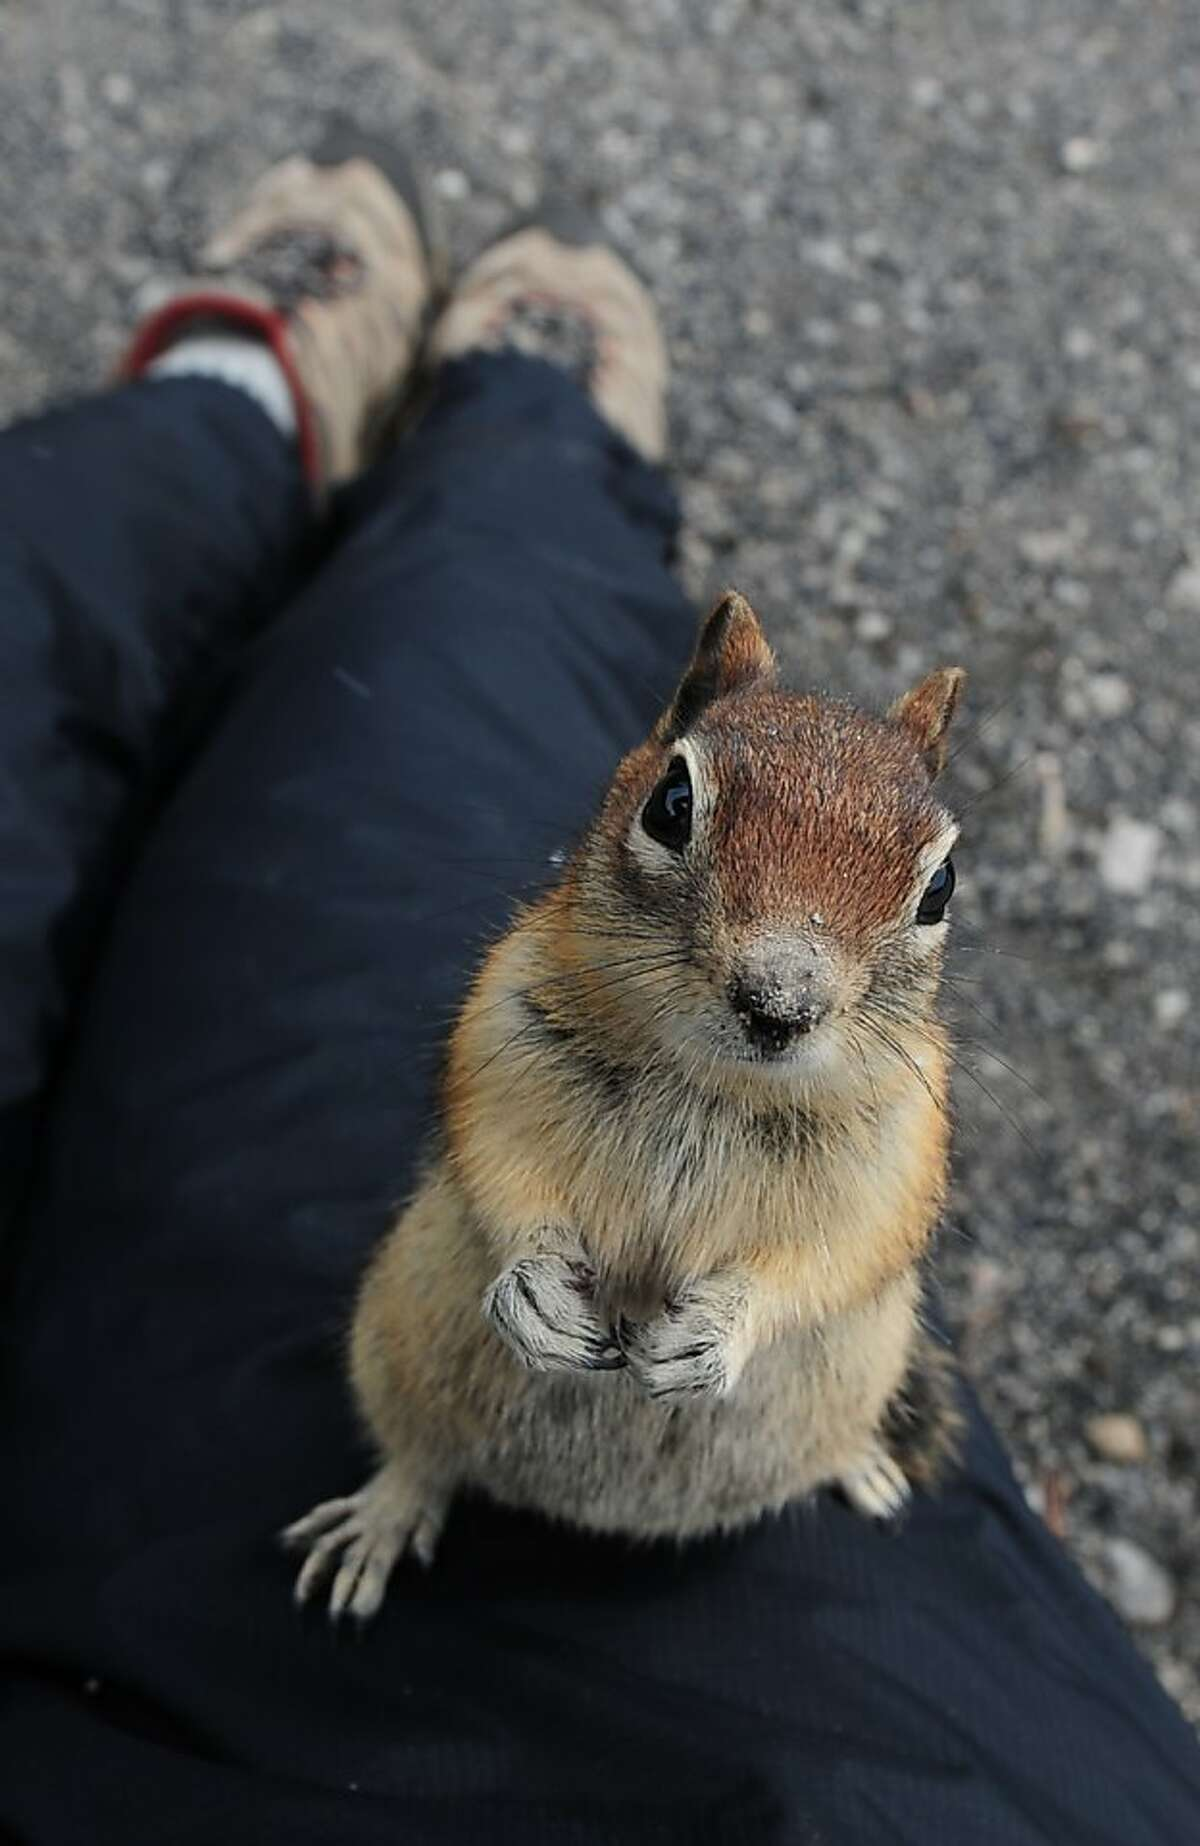 A Chipmunk begs for food in the Yellowstone National Park, Wyoming on June 1, 2011. Yellowstone National Park, was established by the U.S. Congress and signed into law by President Grant on March 1, 1872. The park is located primarily in the U.S. state of Wyoming, though it also extends into Montana and Idaho and was the first national park in the world. It is known for its wildlife and its many geothermal features, especially the Old Faithful Geyser.